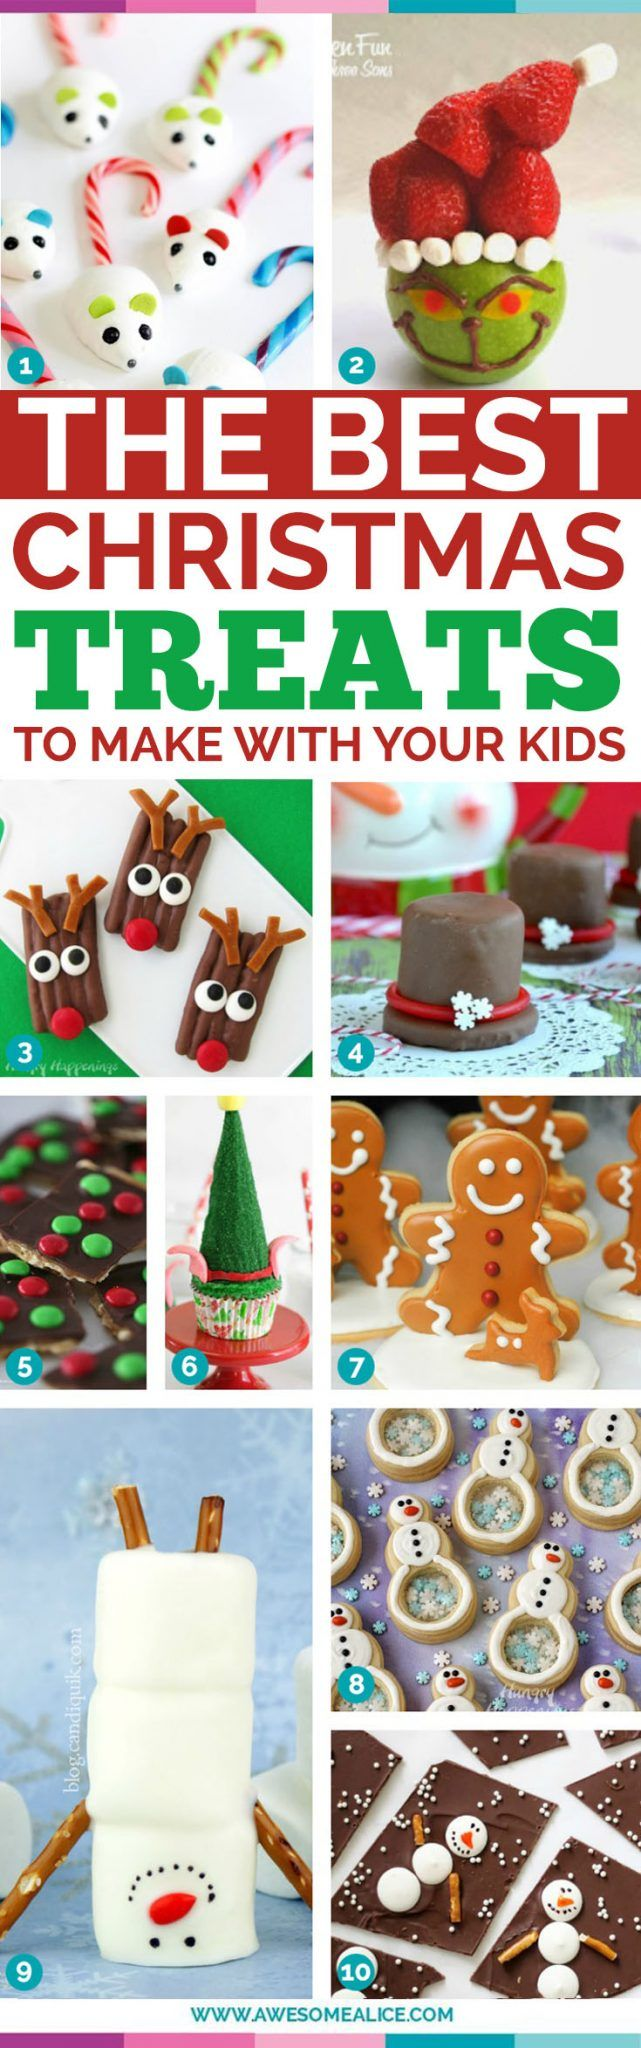 The best christmas treats to make with your kids. 29 best delicious holiday cookie recipes. Delicious, easy and fast cookie recipes to serve during the holiday season. GIft them or eat them these delicious treats will be loved by all. #christmas #christmascookies #cookies #holidaycookies #cookierecipes #kidschristmas www.awesomealice